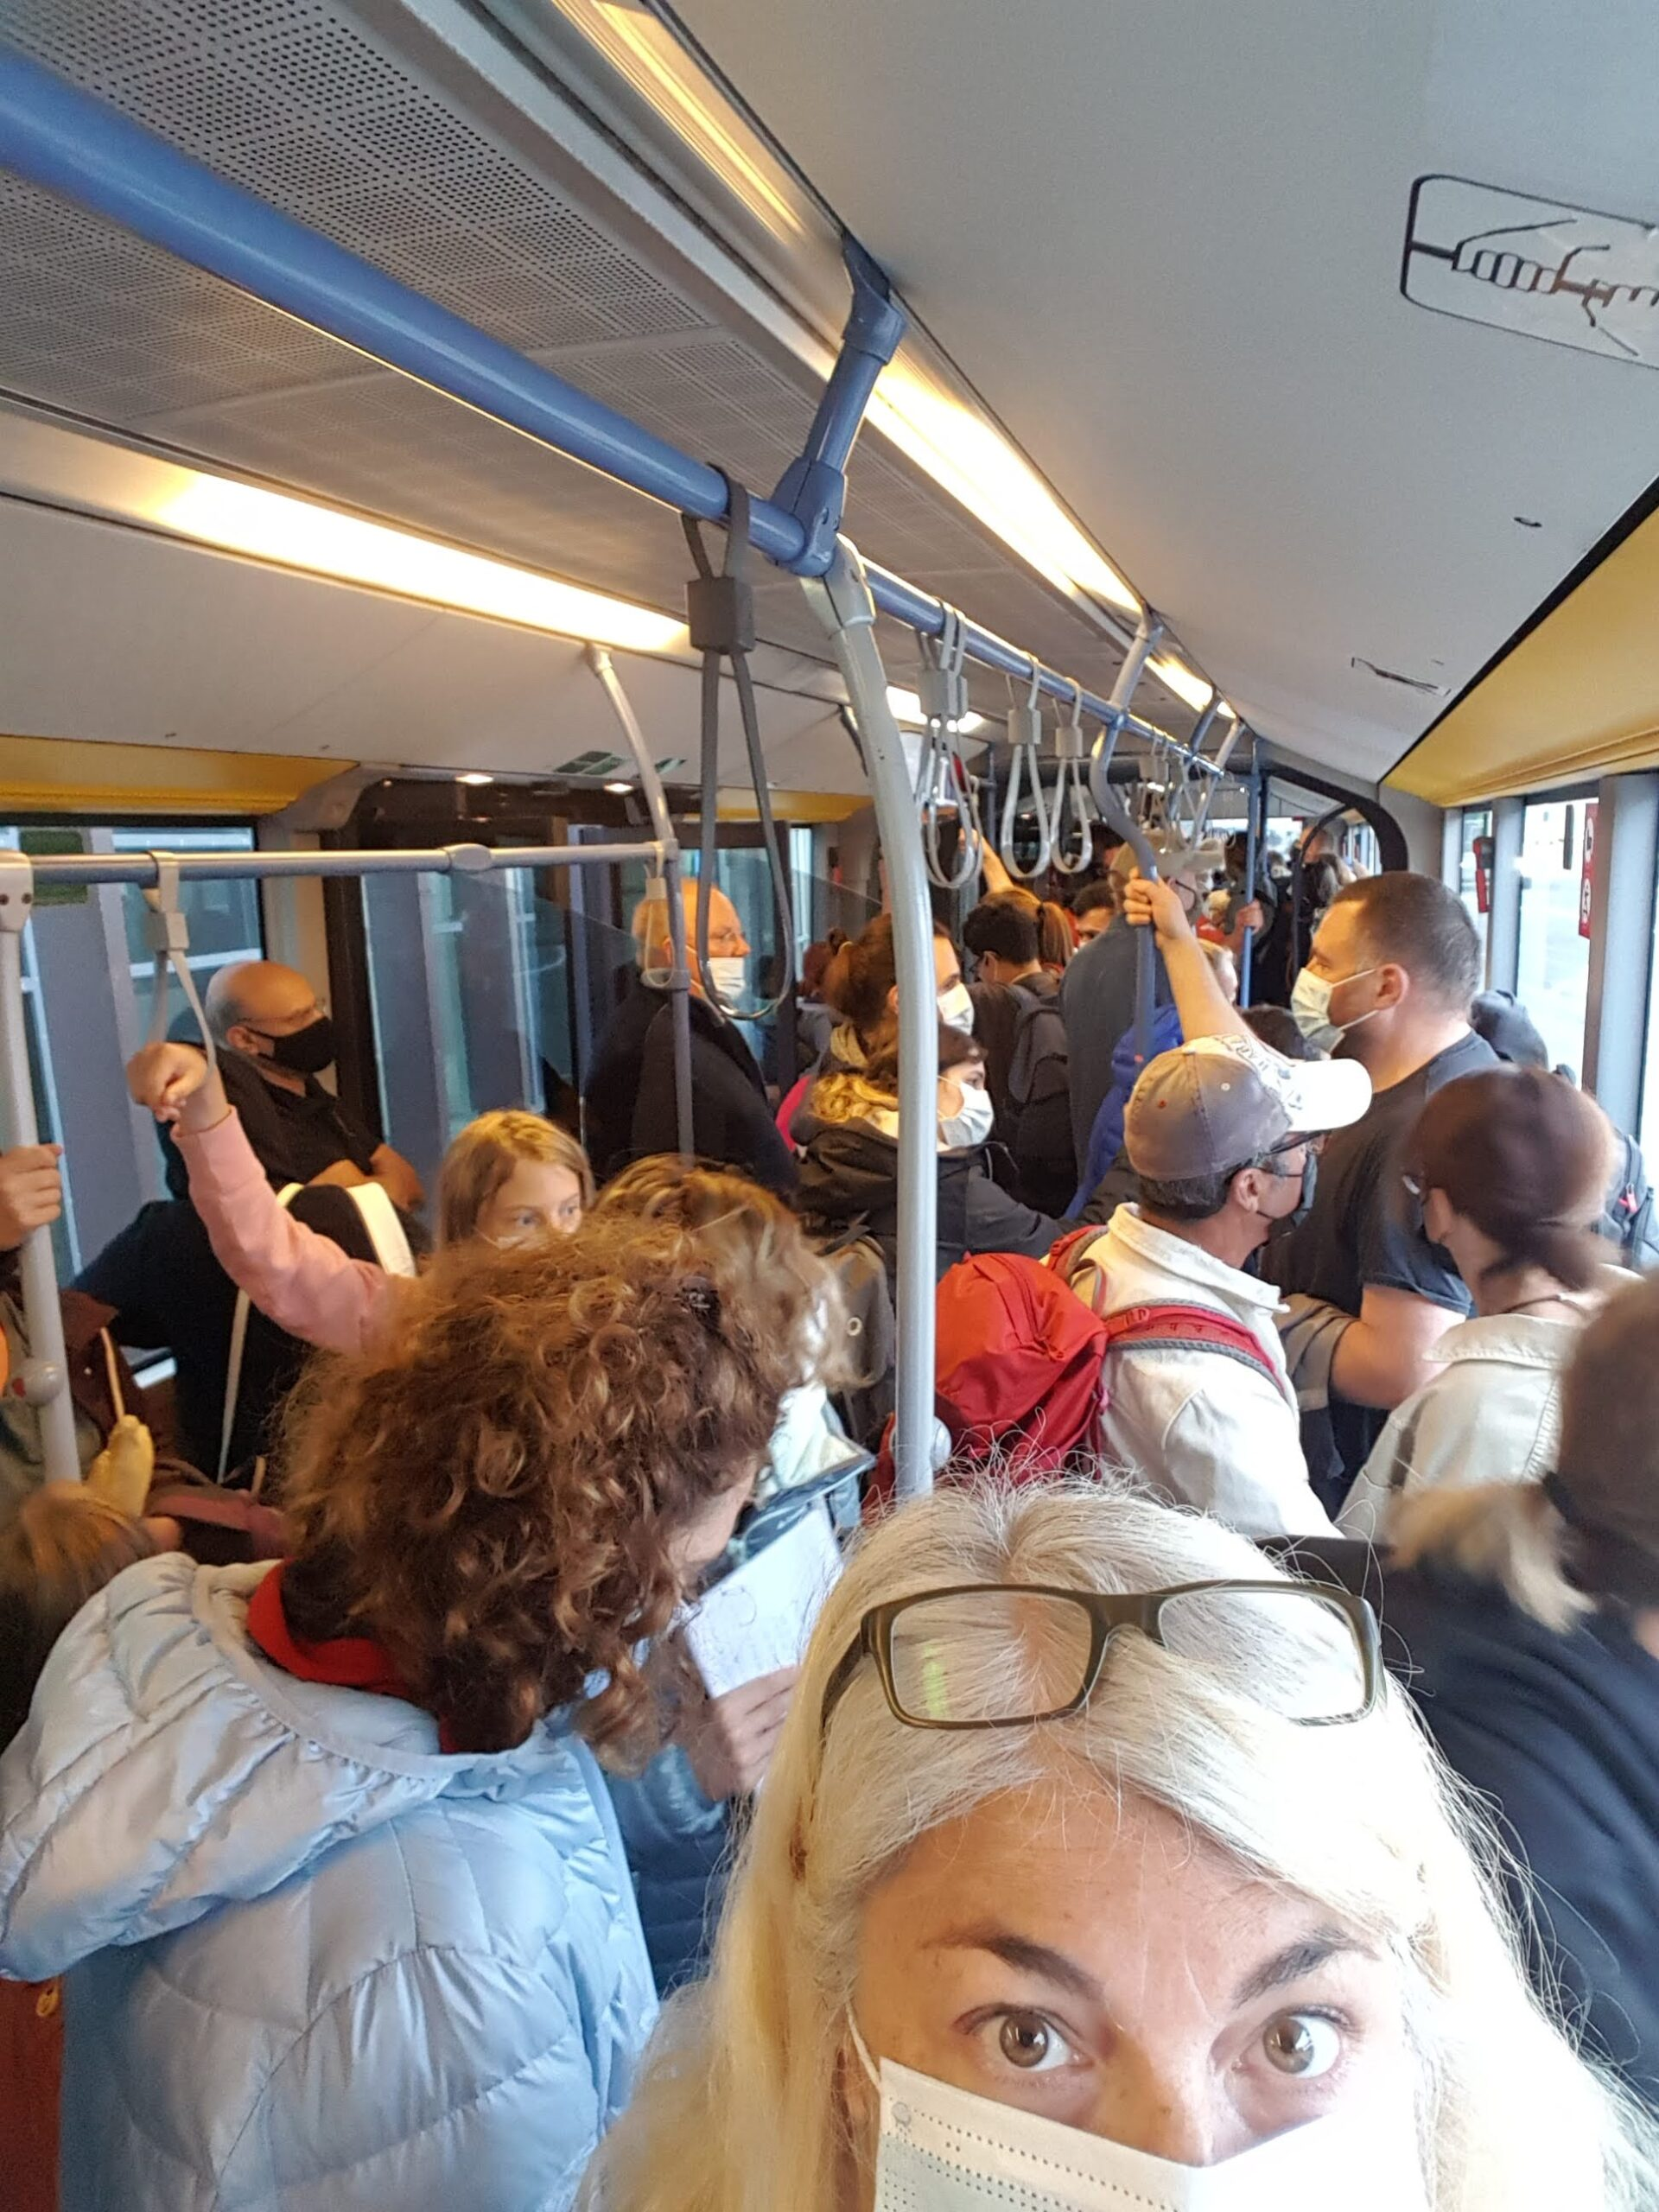 Lindblad cruise - On a crowded bus at Reykjavik airport. Too close for Covid comfort!